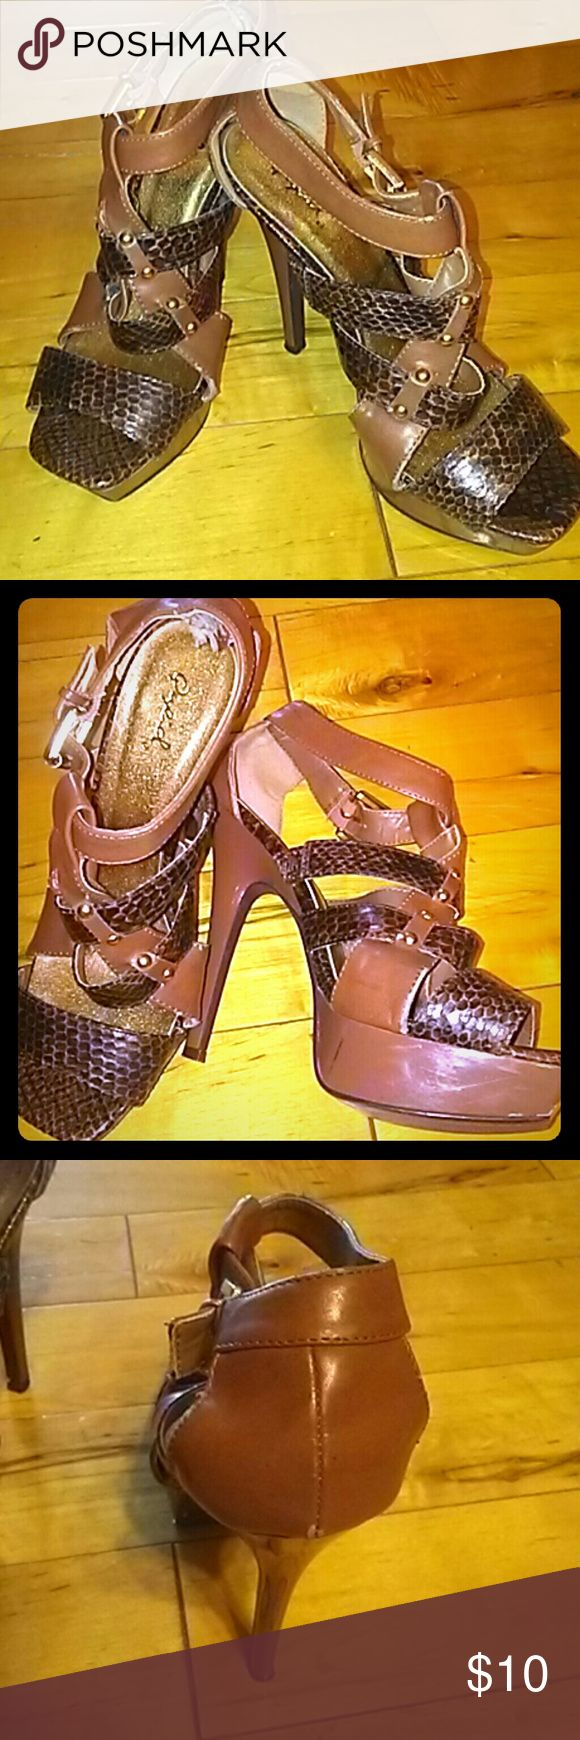 Sexy snakeskin Heels very chic Dark brown tan carmal color with touch of blk oupid Heels gorgeous.wear with your favorite jeans or dress oupid Shoes Heels